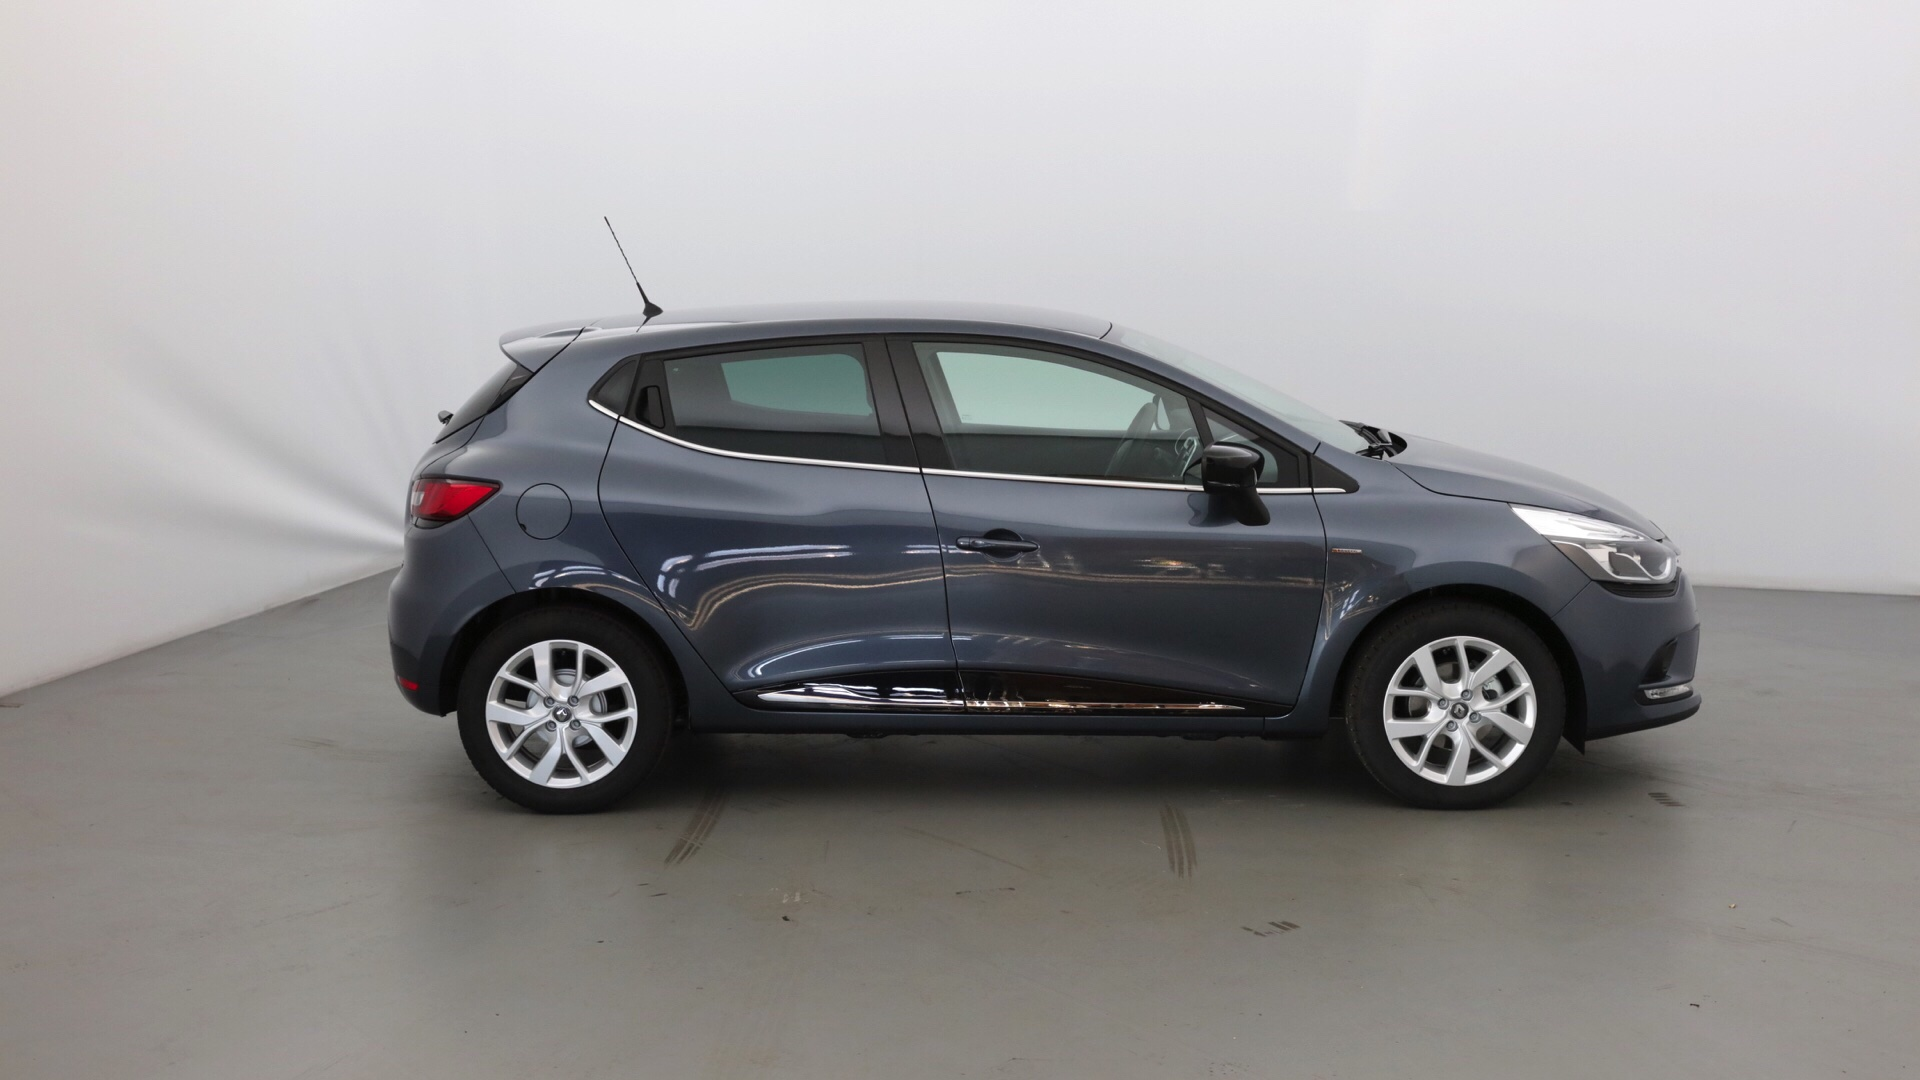 RENAULT CLIO 0.9 TCE 90CH LIMITED 5P - Miniature 4